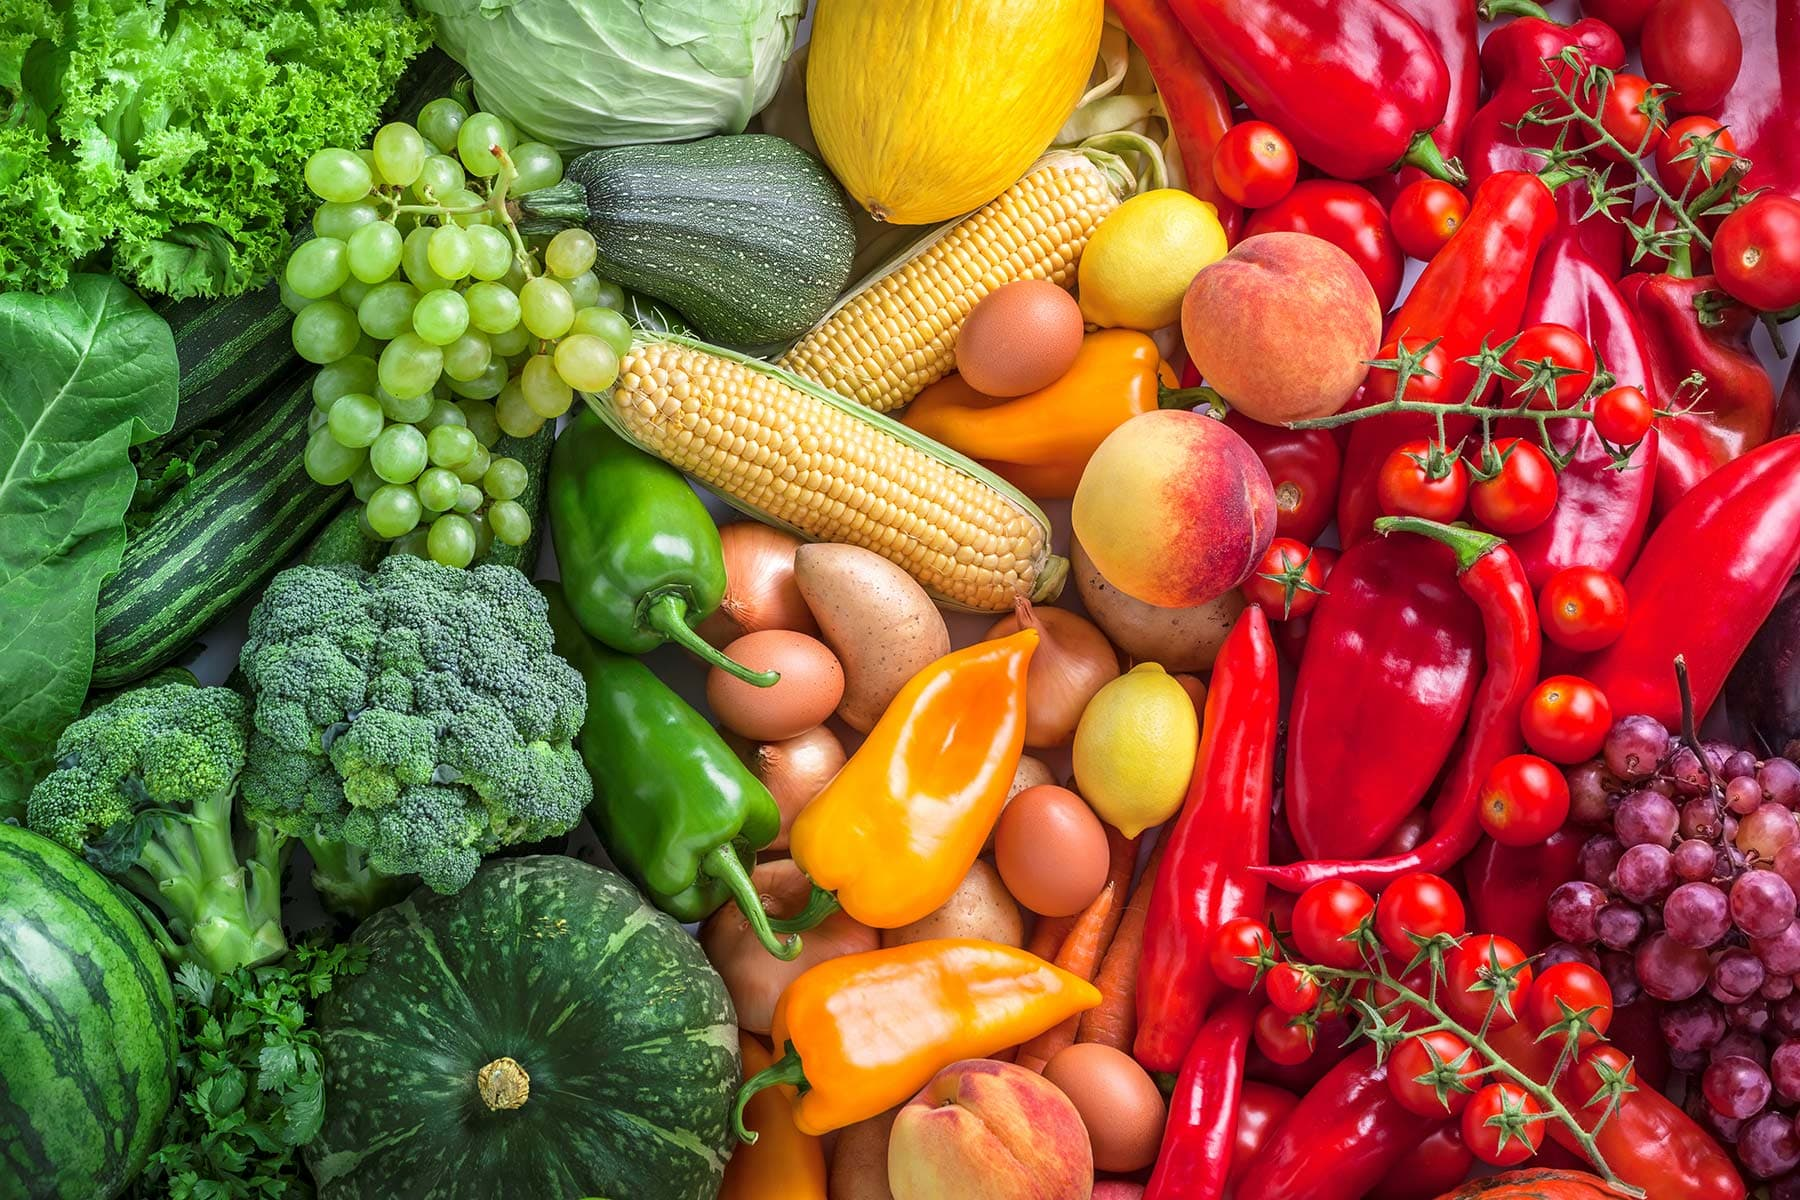 Wash your Fruits, Vegetables Thoroughly Before Peeling Says CDC